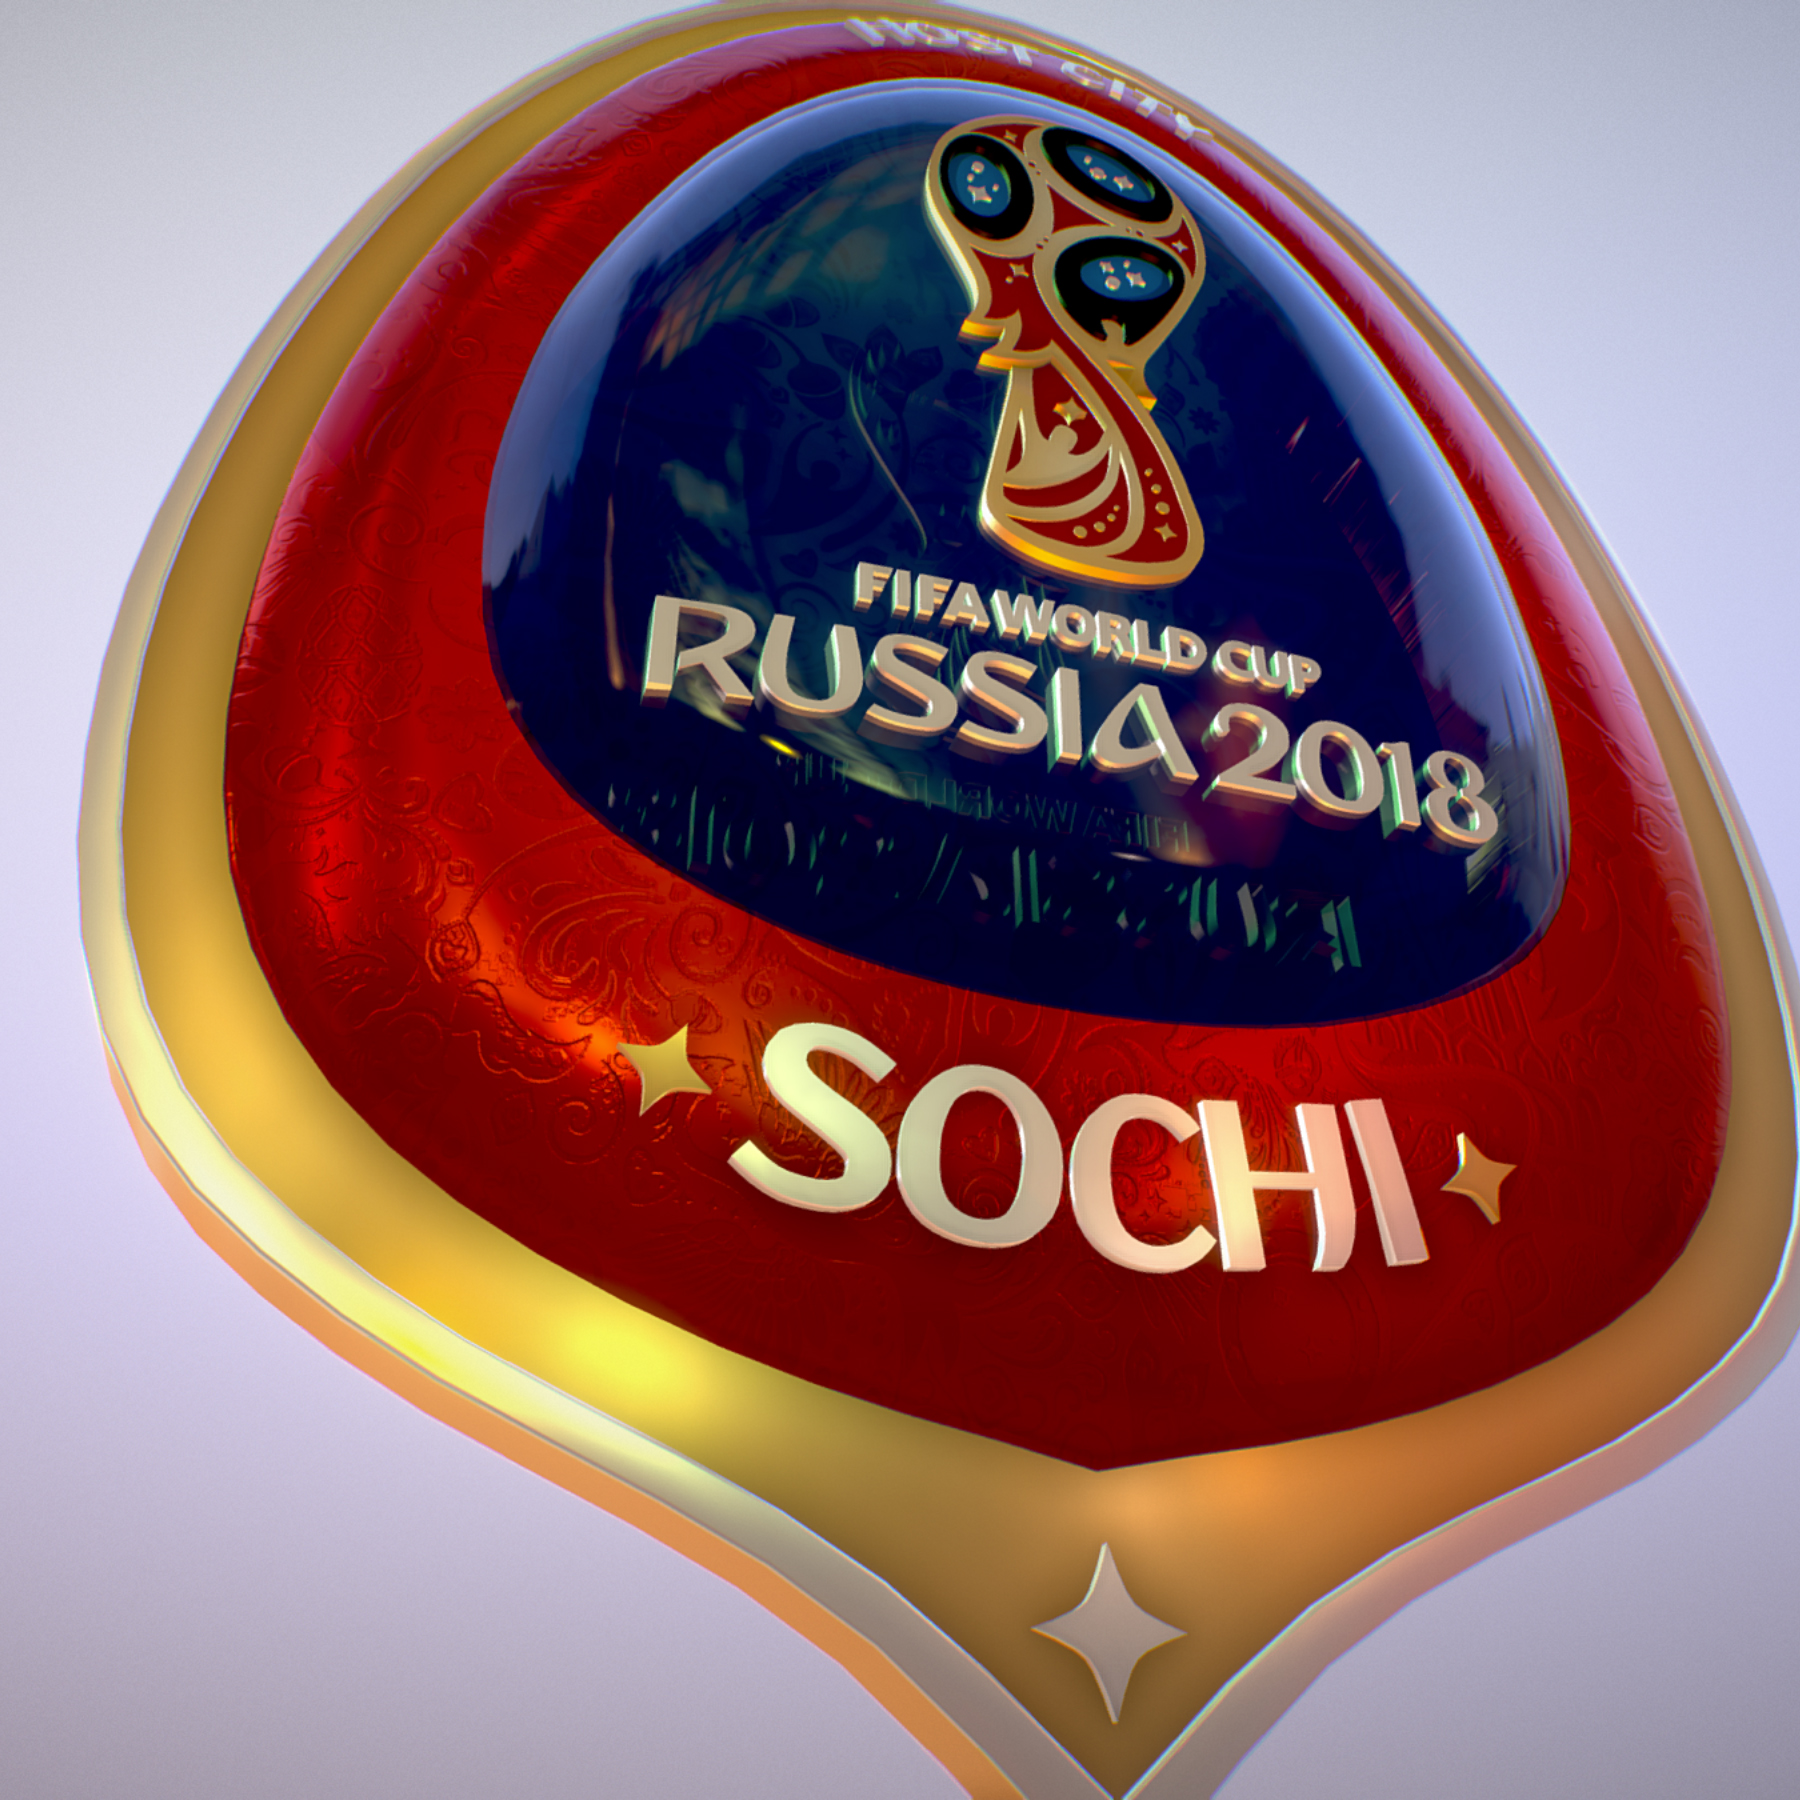 sochi host city world cup russia 2018 symbol 3d model max  fbx ma mb obj 271713